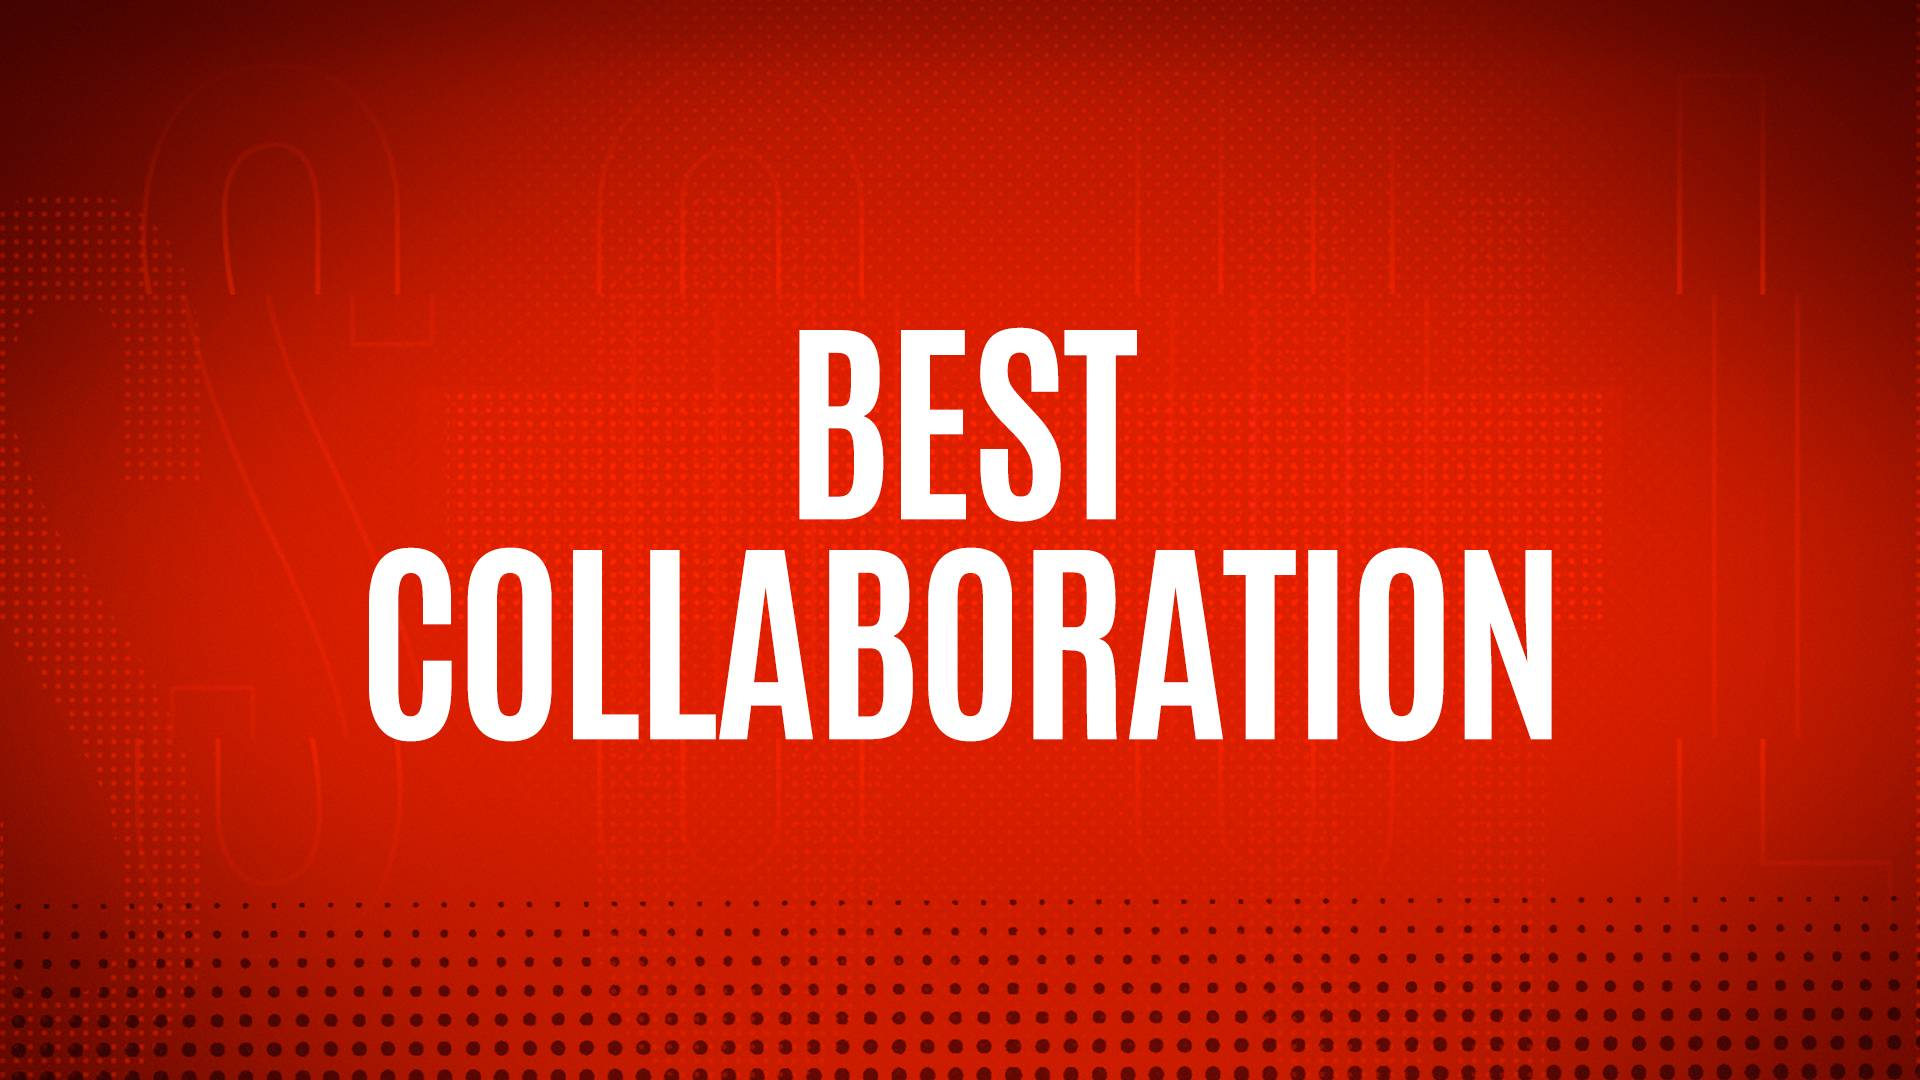 NOMINEES - BEST COLLABORATION